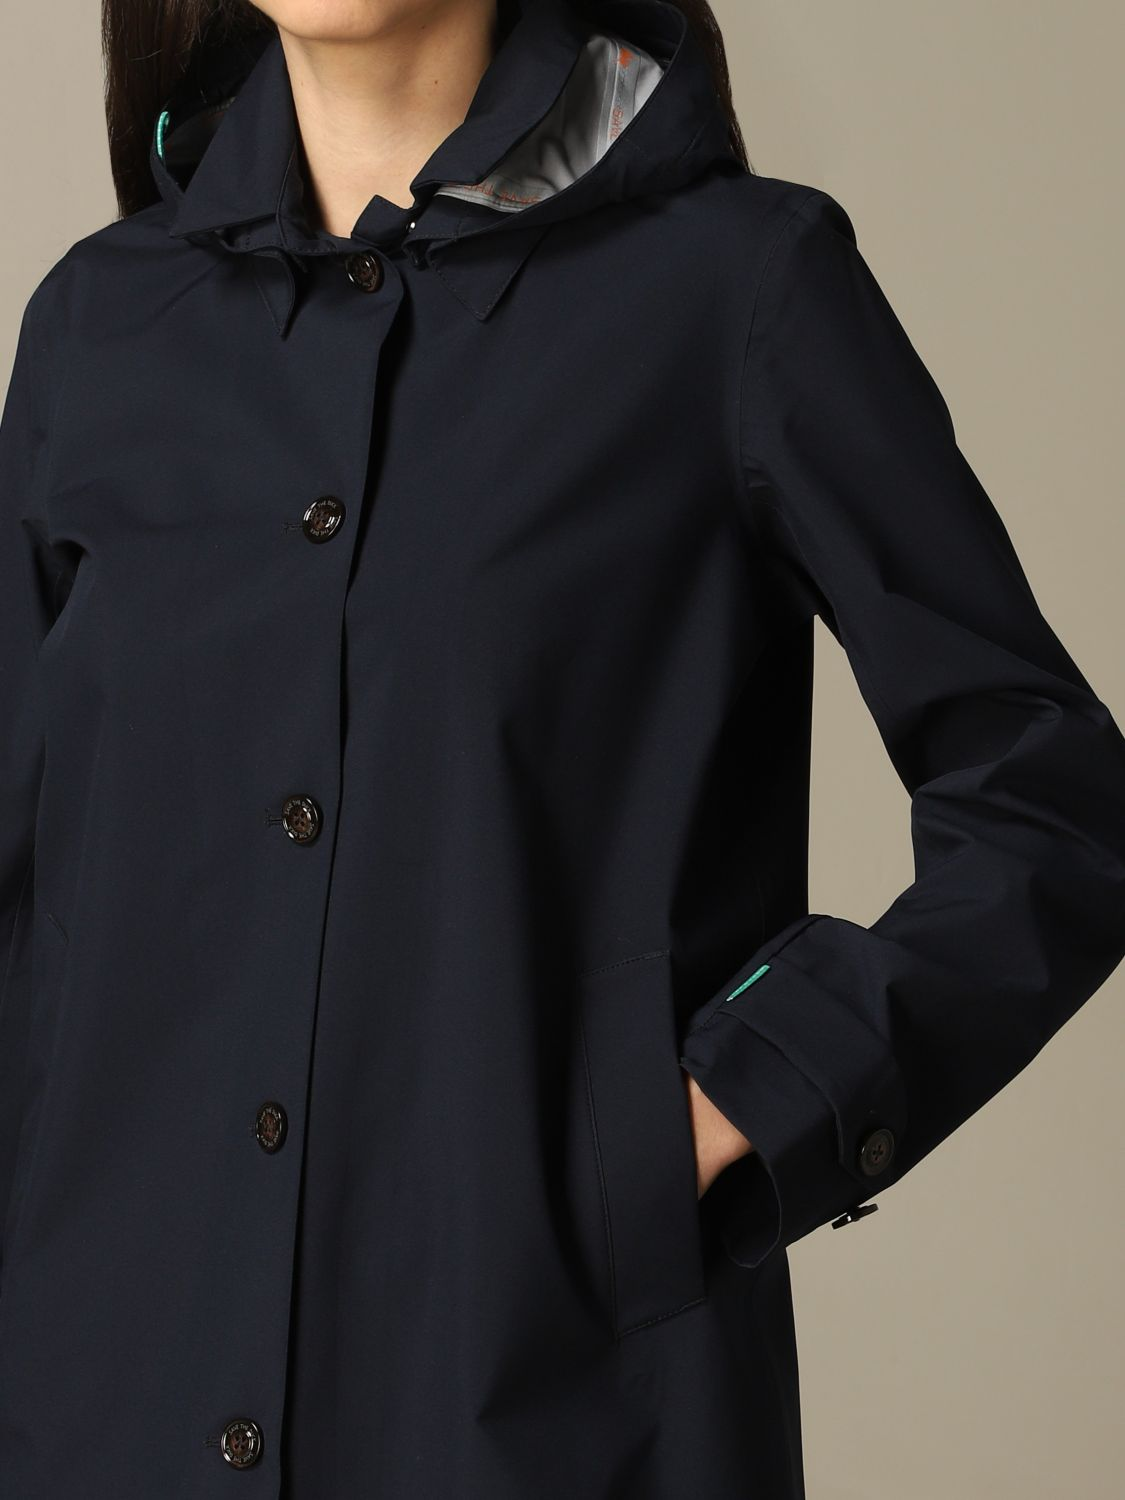 Save The Duck hooded coat blue 3